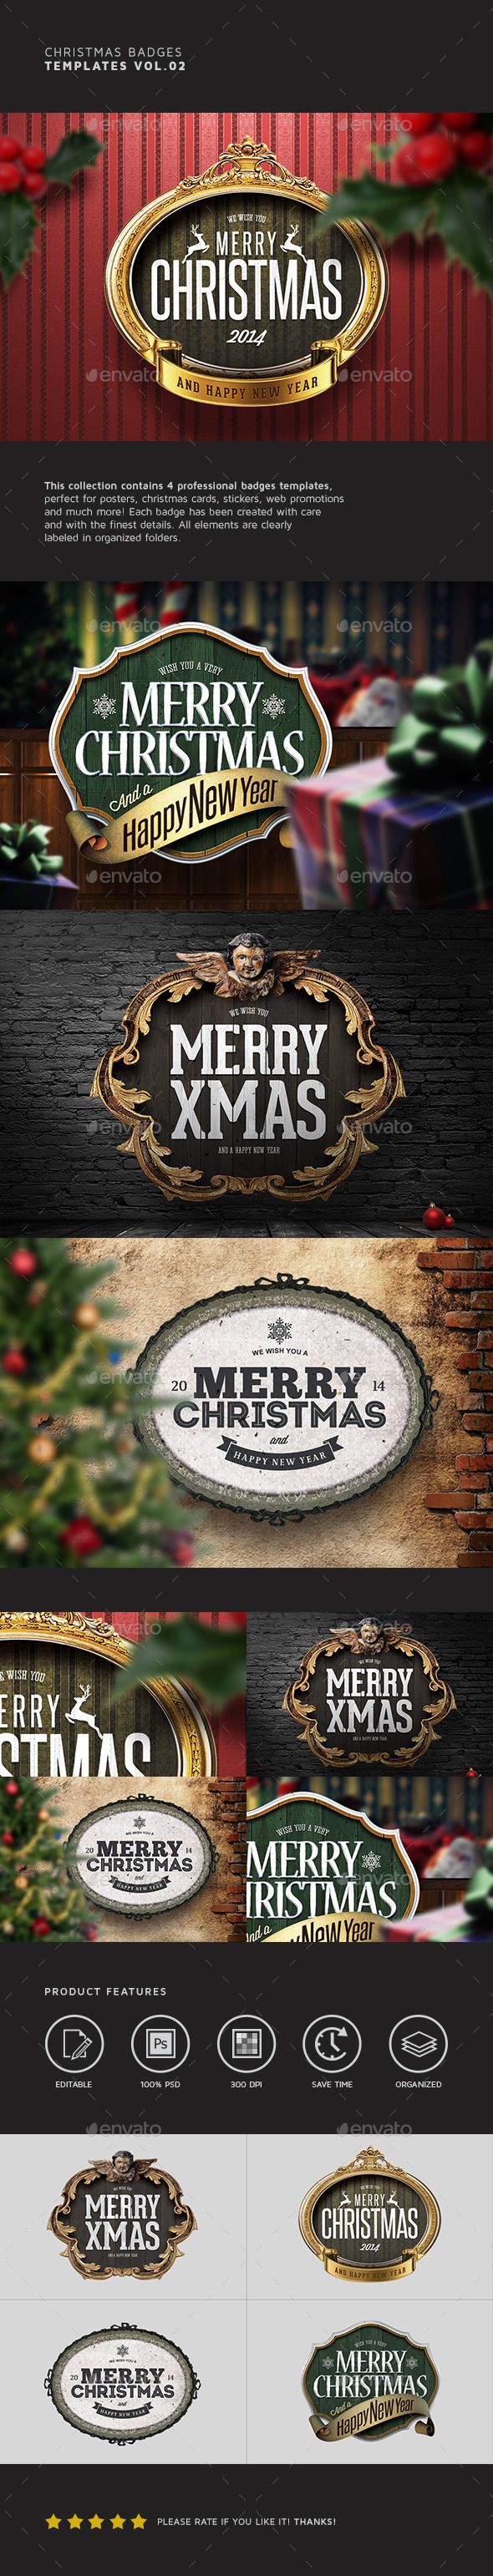 Christmas Badges Template #design Download: http://graphicriver.net/item/christmas-badges-vol02/9476076?ref=ksioks